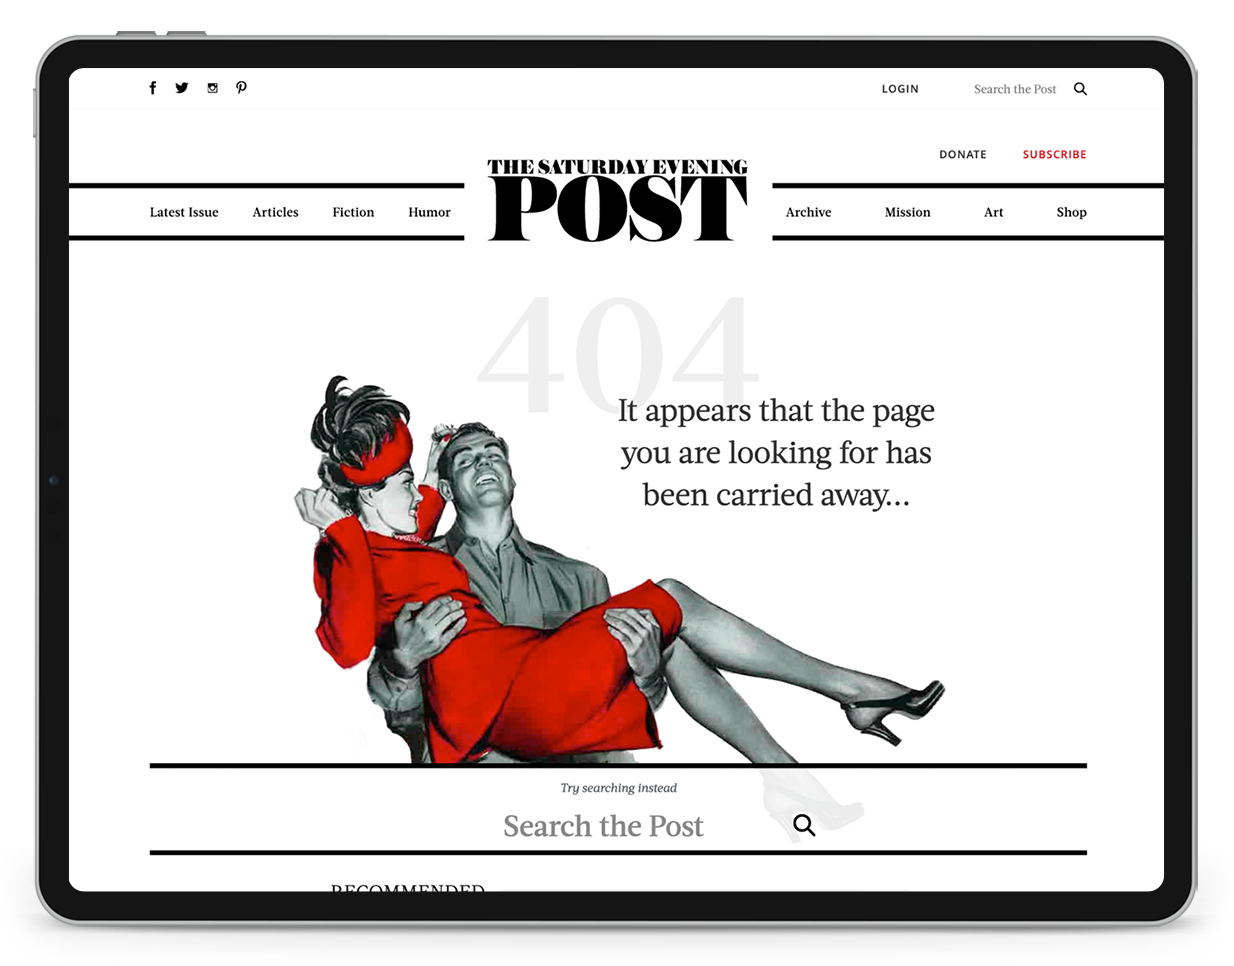 Saturday Evening Post 404 Page